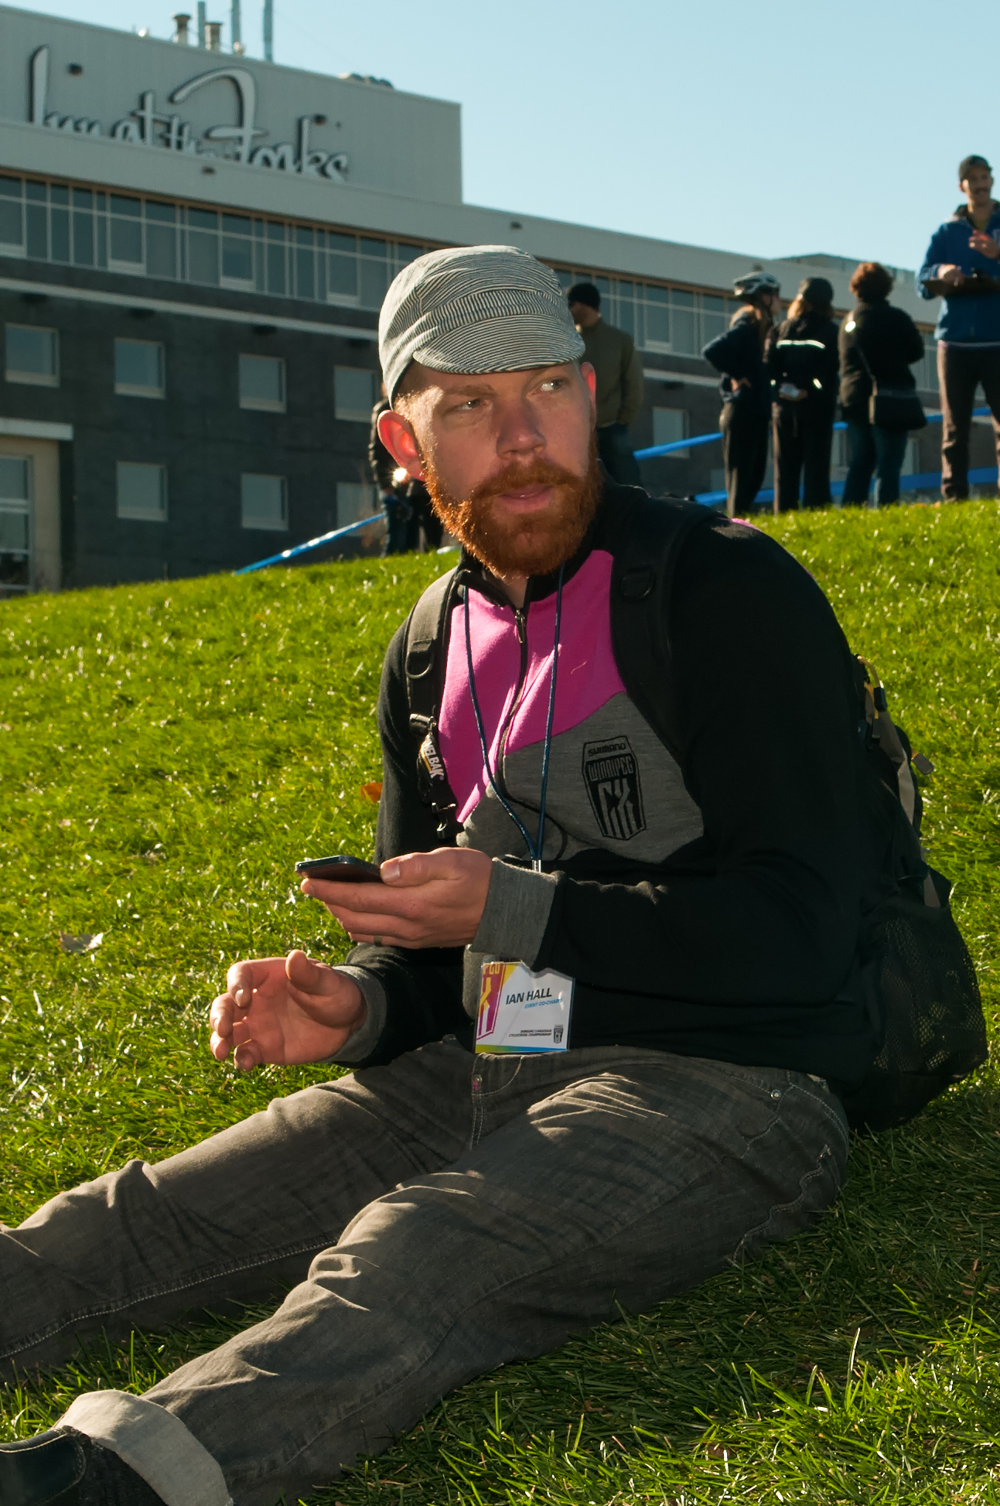 2014 - Ian Hall finally has a rest and enjoys the sport that he loves most - Cyclocross!